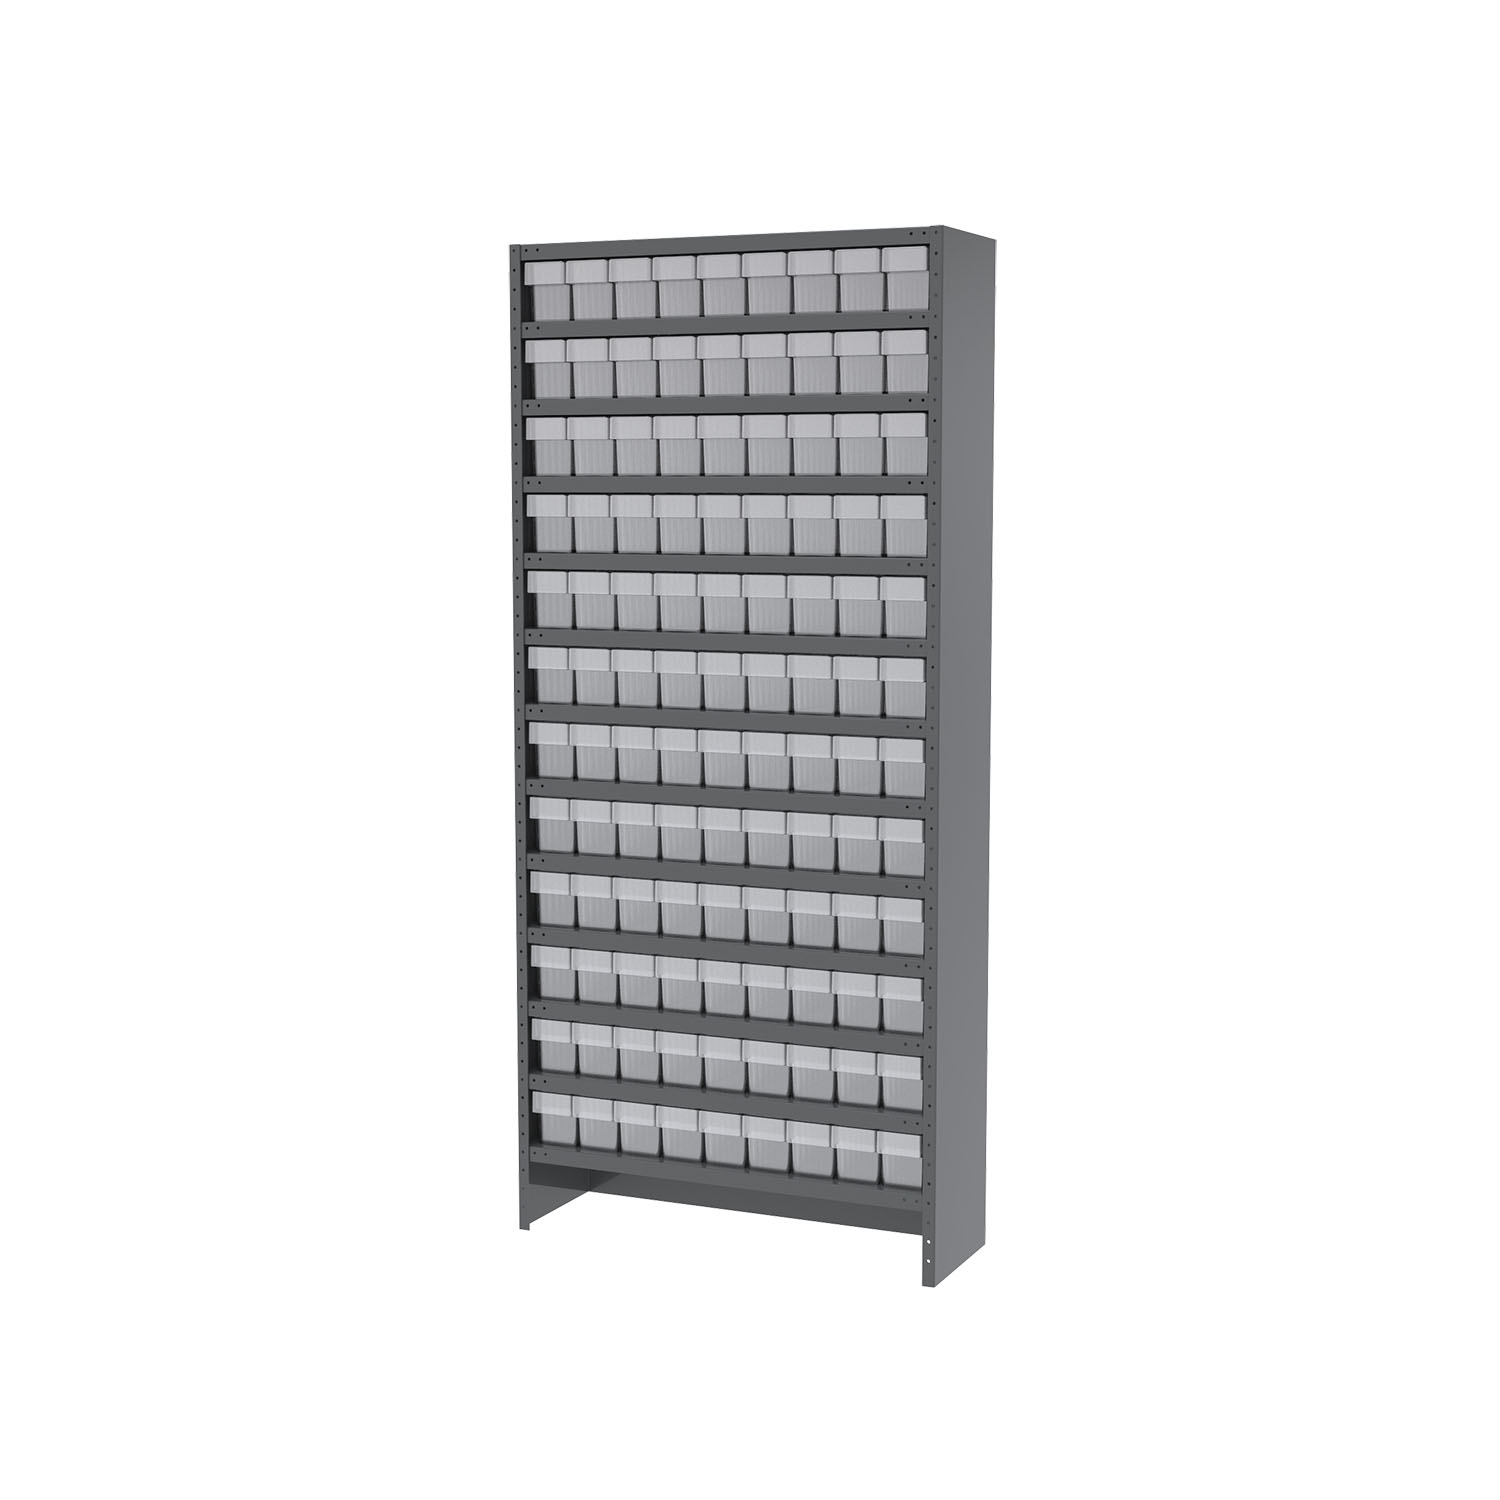 Akro-Mils Enclosed Steel Shelving Kit 13 Shelves12x36x79, 108 AkroDrawers Gray/Clear